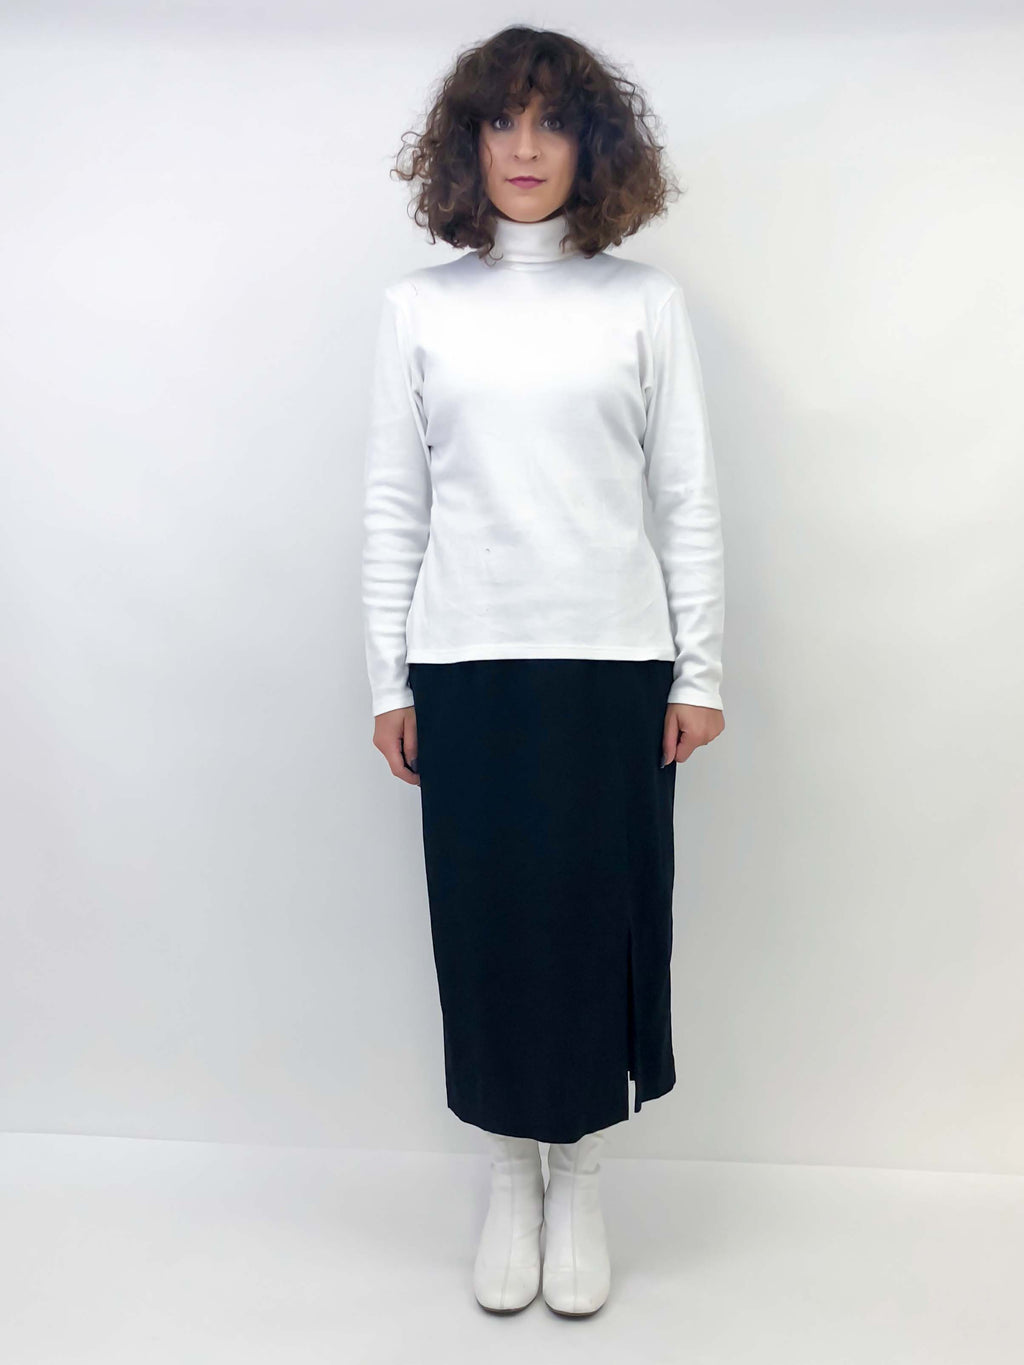 Vintage White Turtleneck : Medium : Alyssa Turtleneck